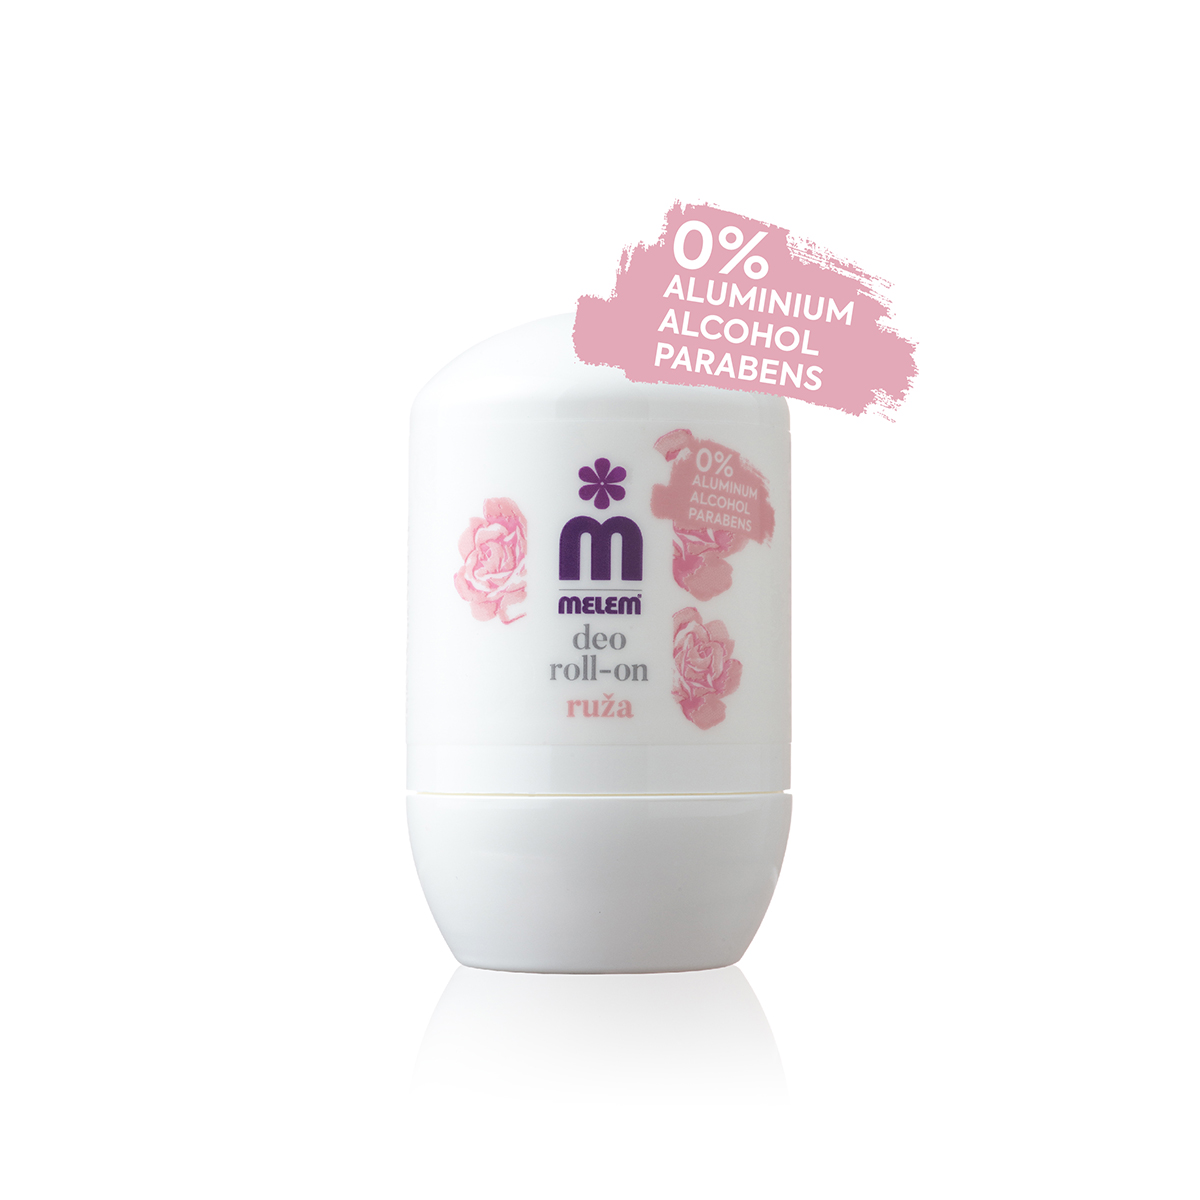 Melem deo roll-on rose